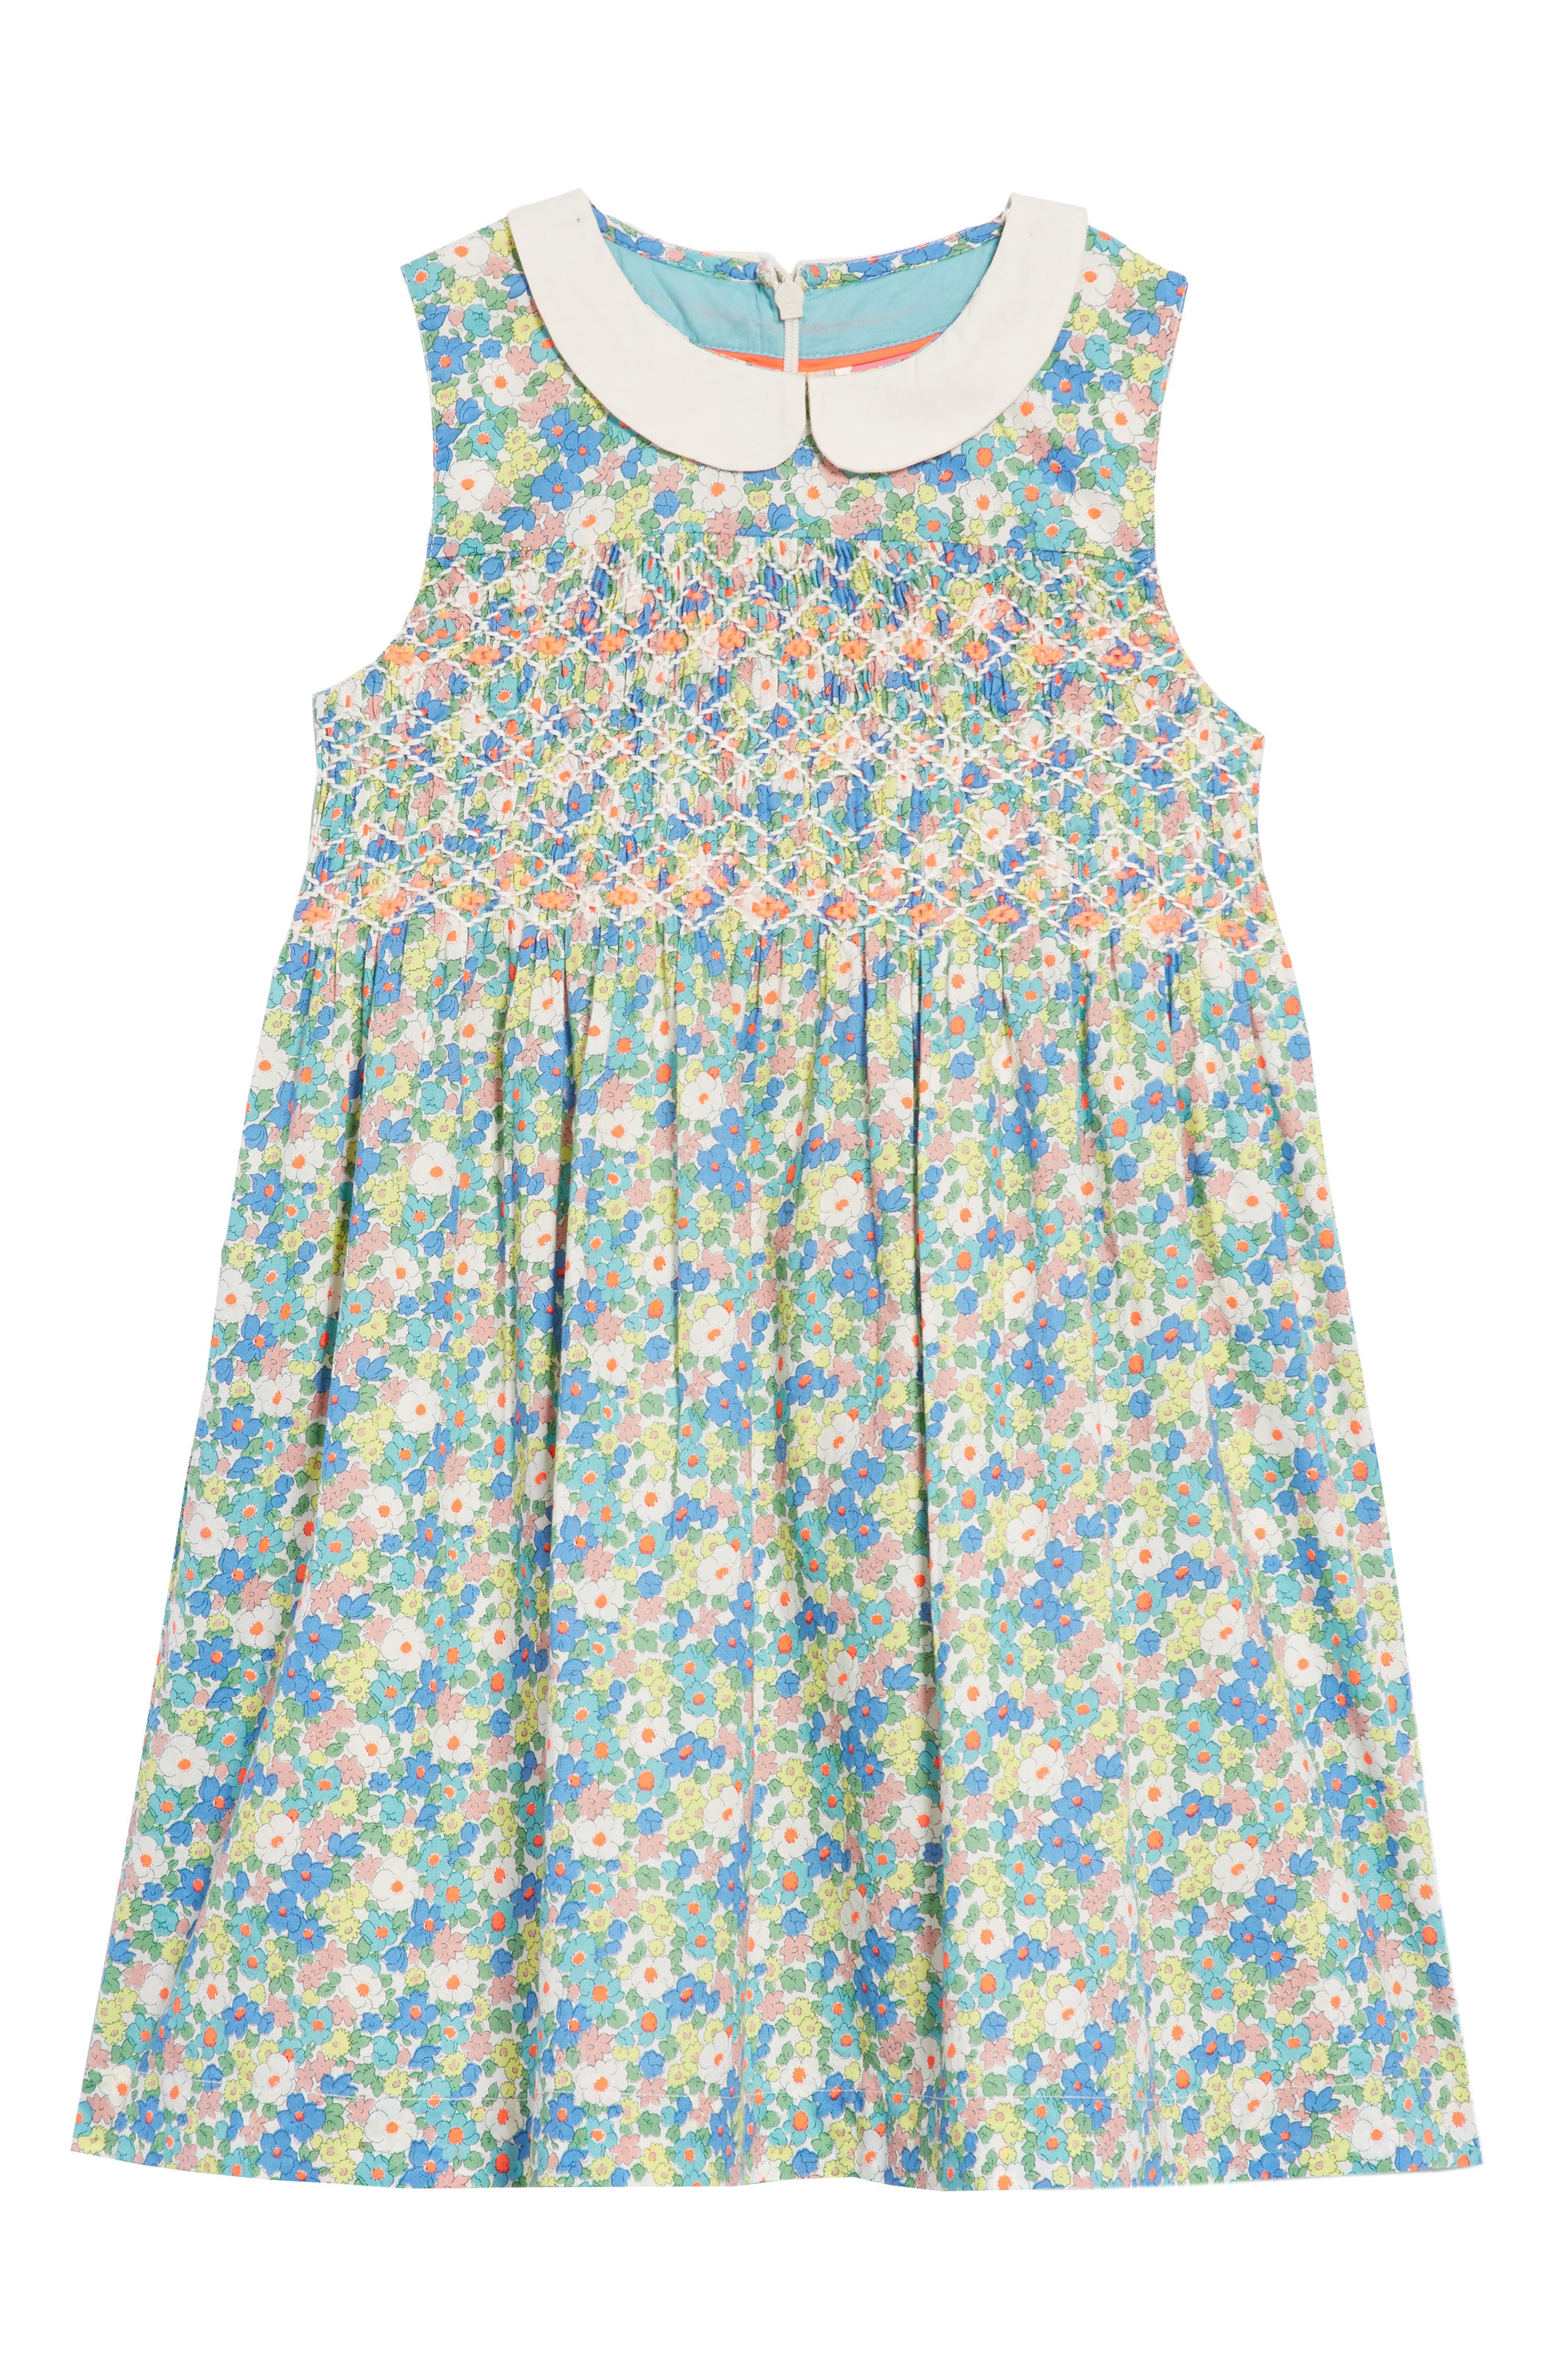 Nostalgic Smocked Dress,                             Main thumbnail 1, color,                             406